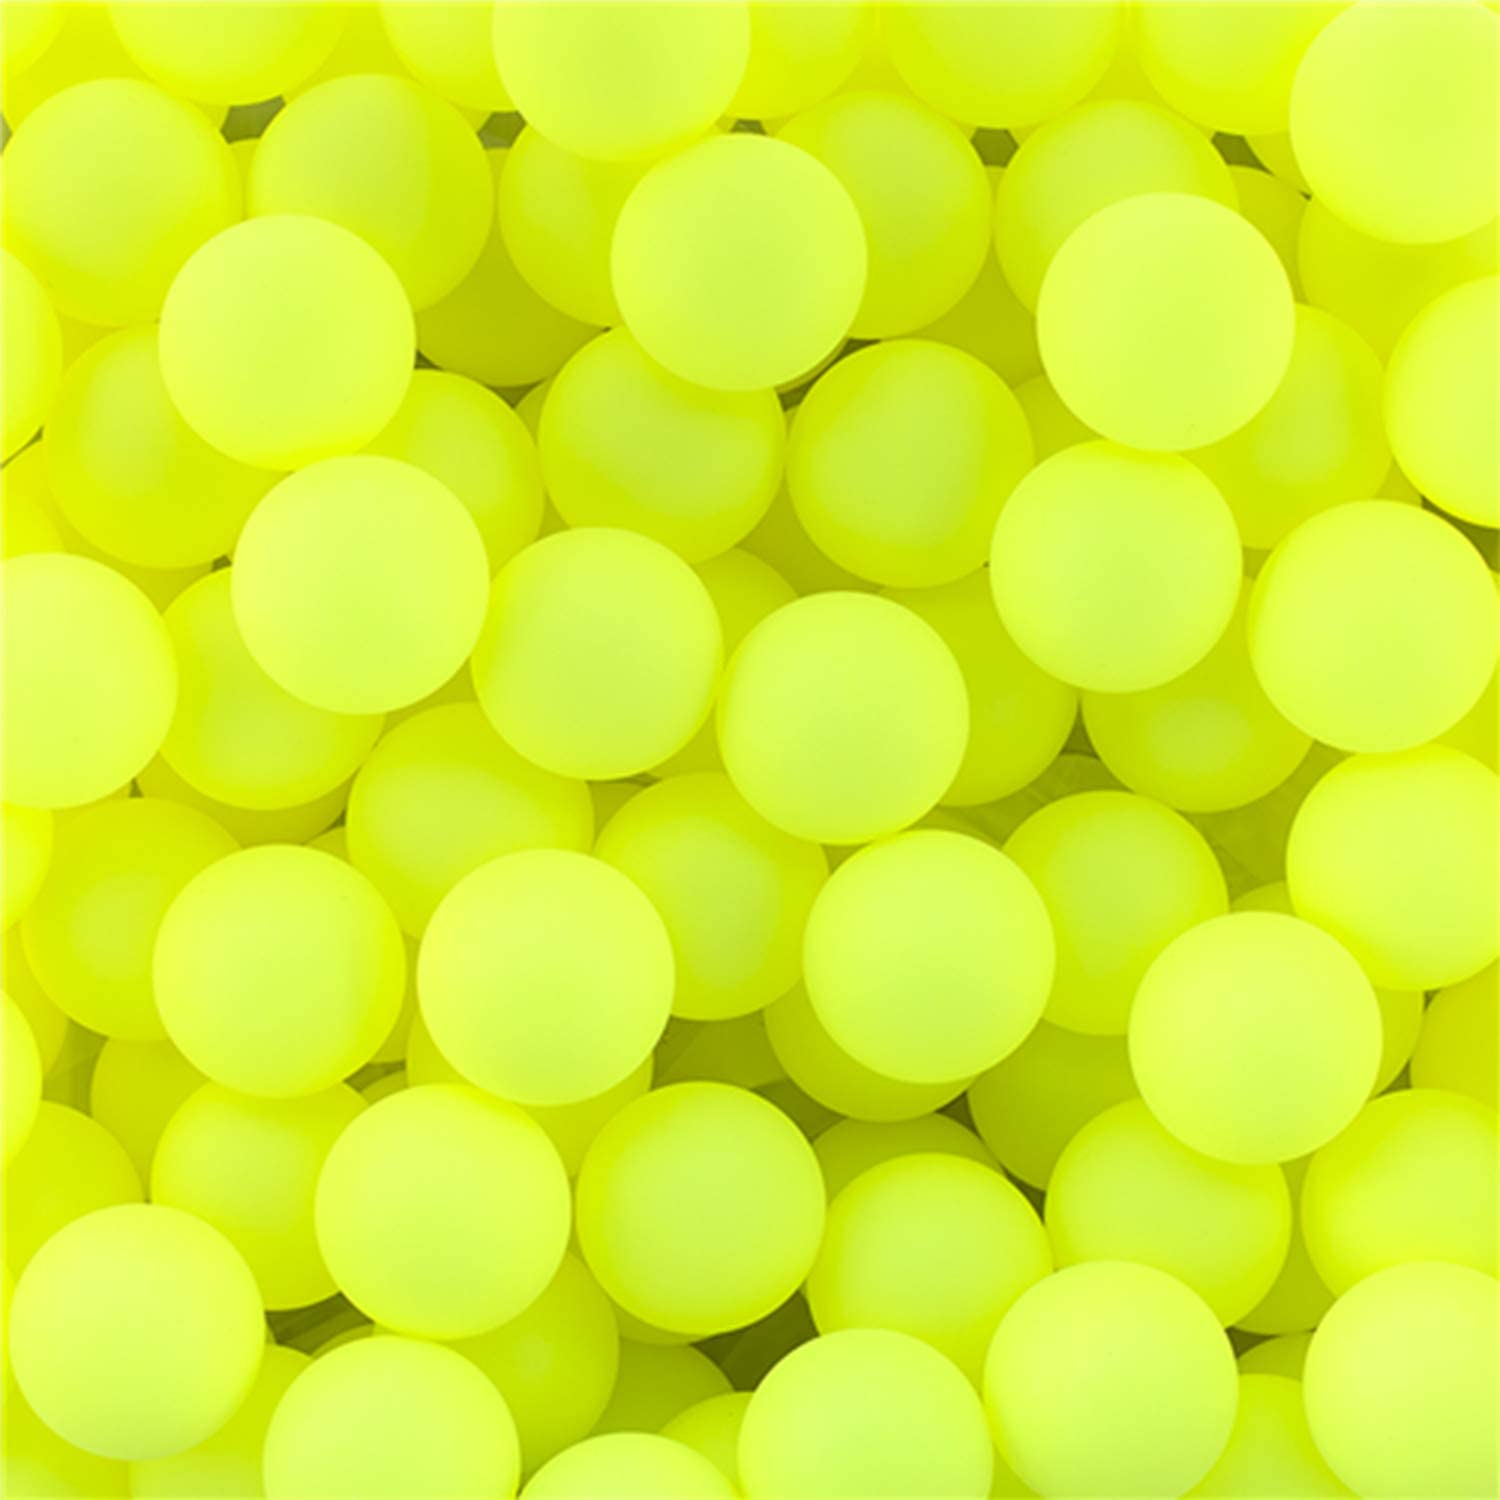 100 Pack Beer Ping Pong Balls Assorted Colors 40mm PP Plastic For Training Games